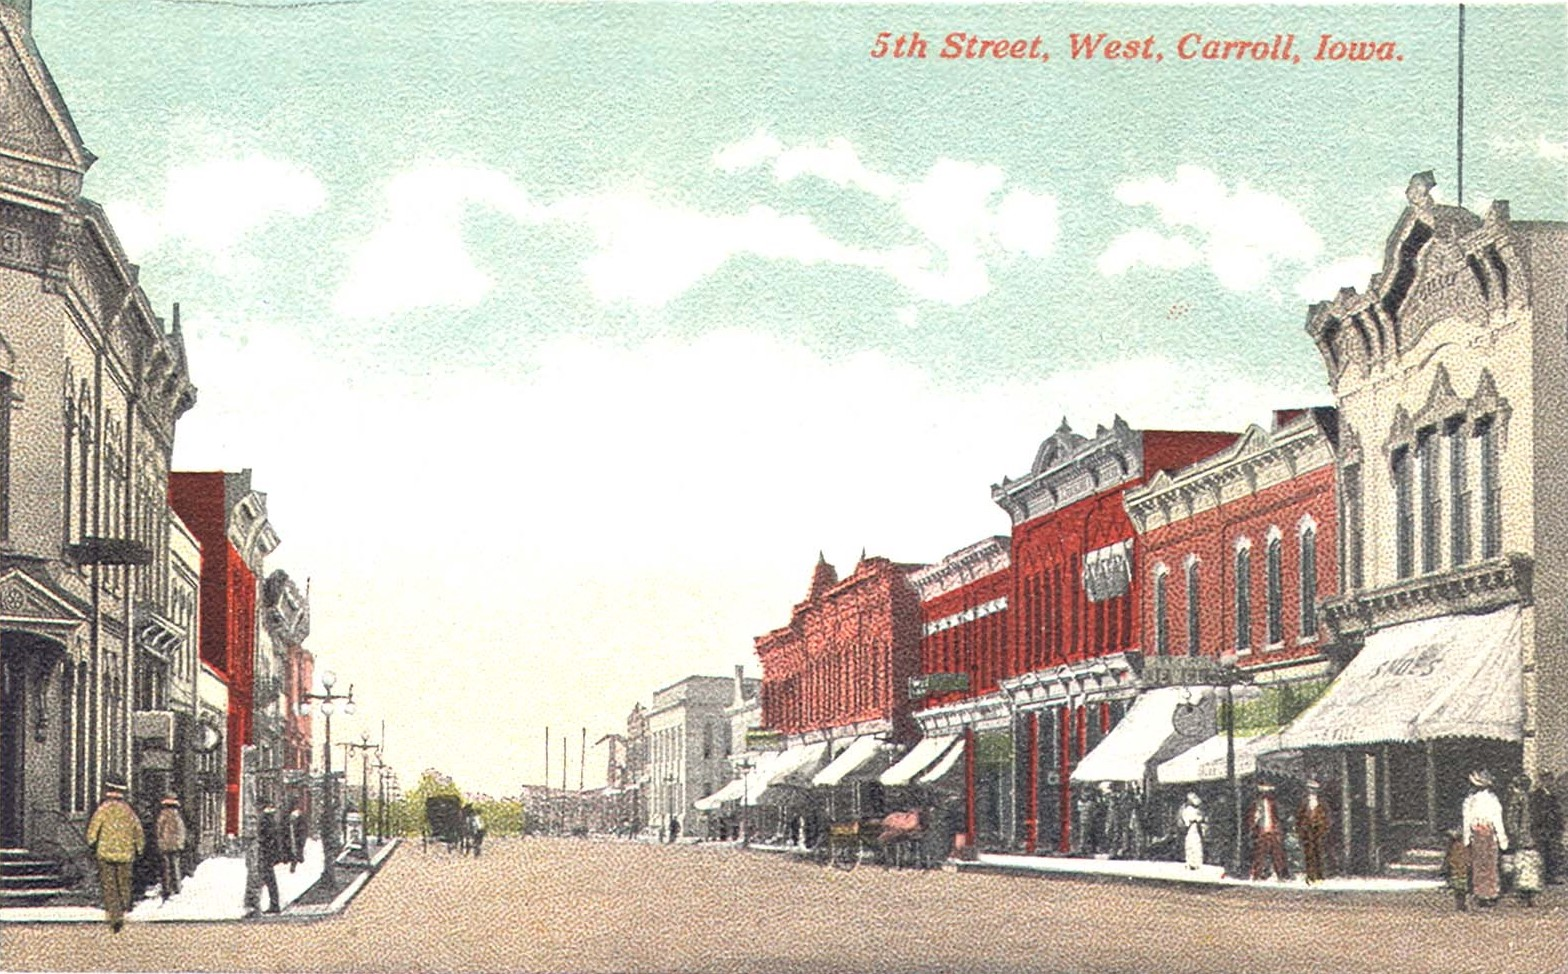 An antique, color postcard of 5th Street, Carroll, Iowa, from about 1915.